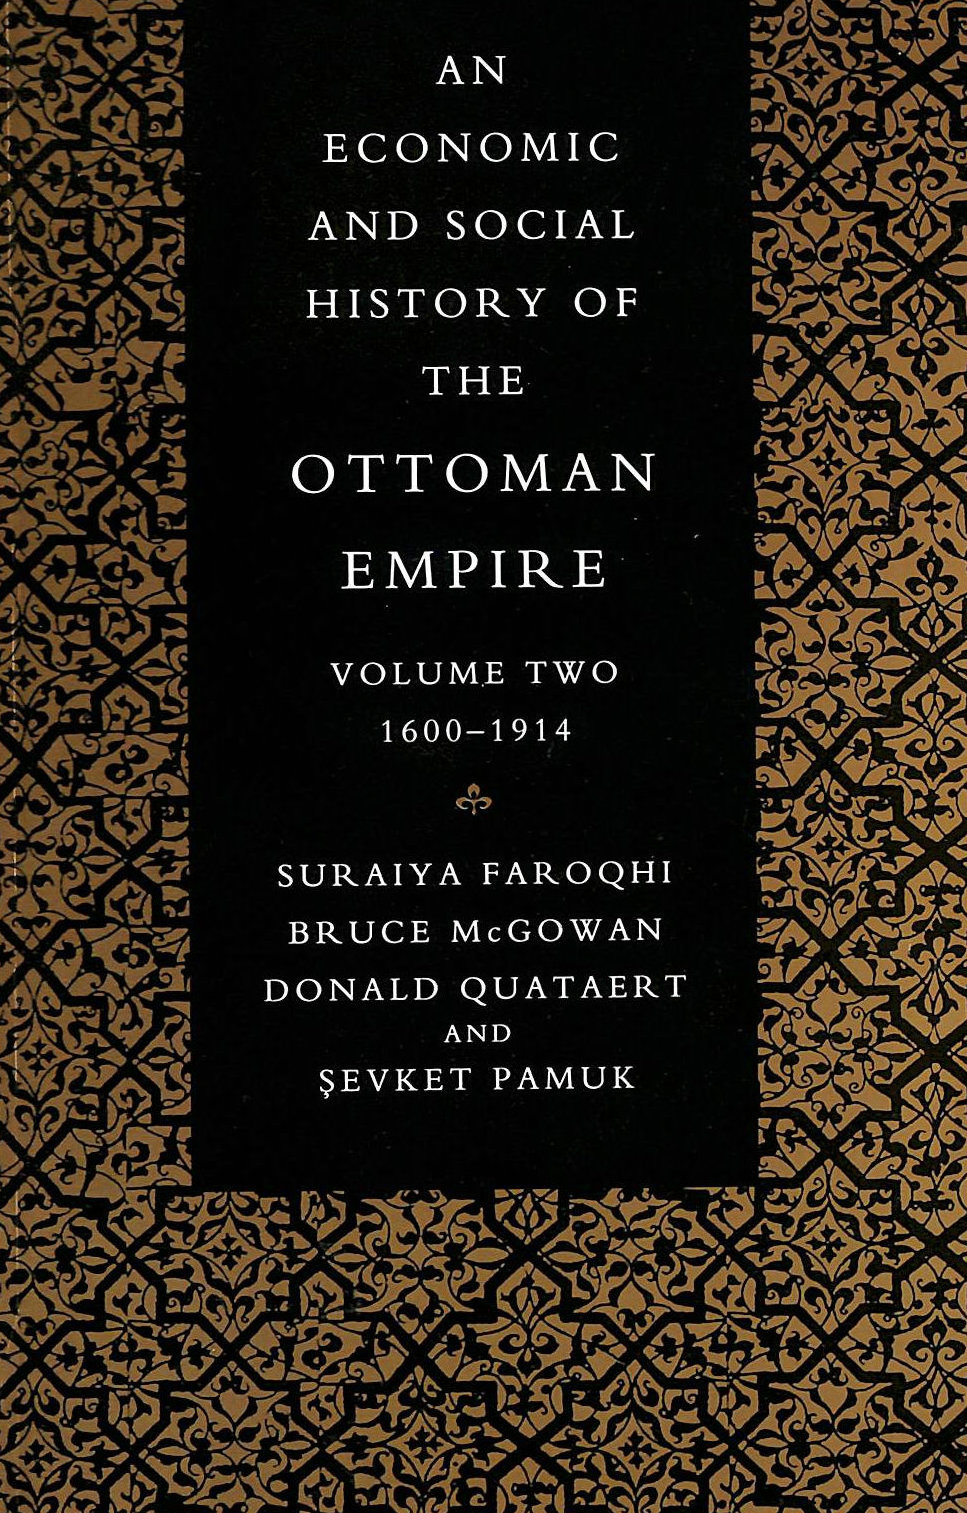 Image for An Economic and Social History of the Ottoman Empire. Volume Two 1600-1914